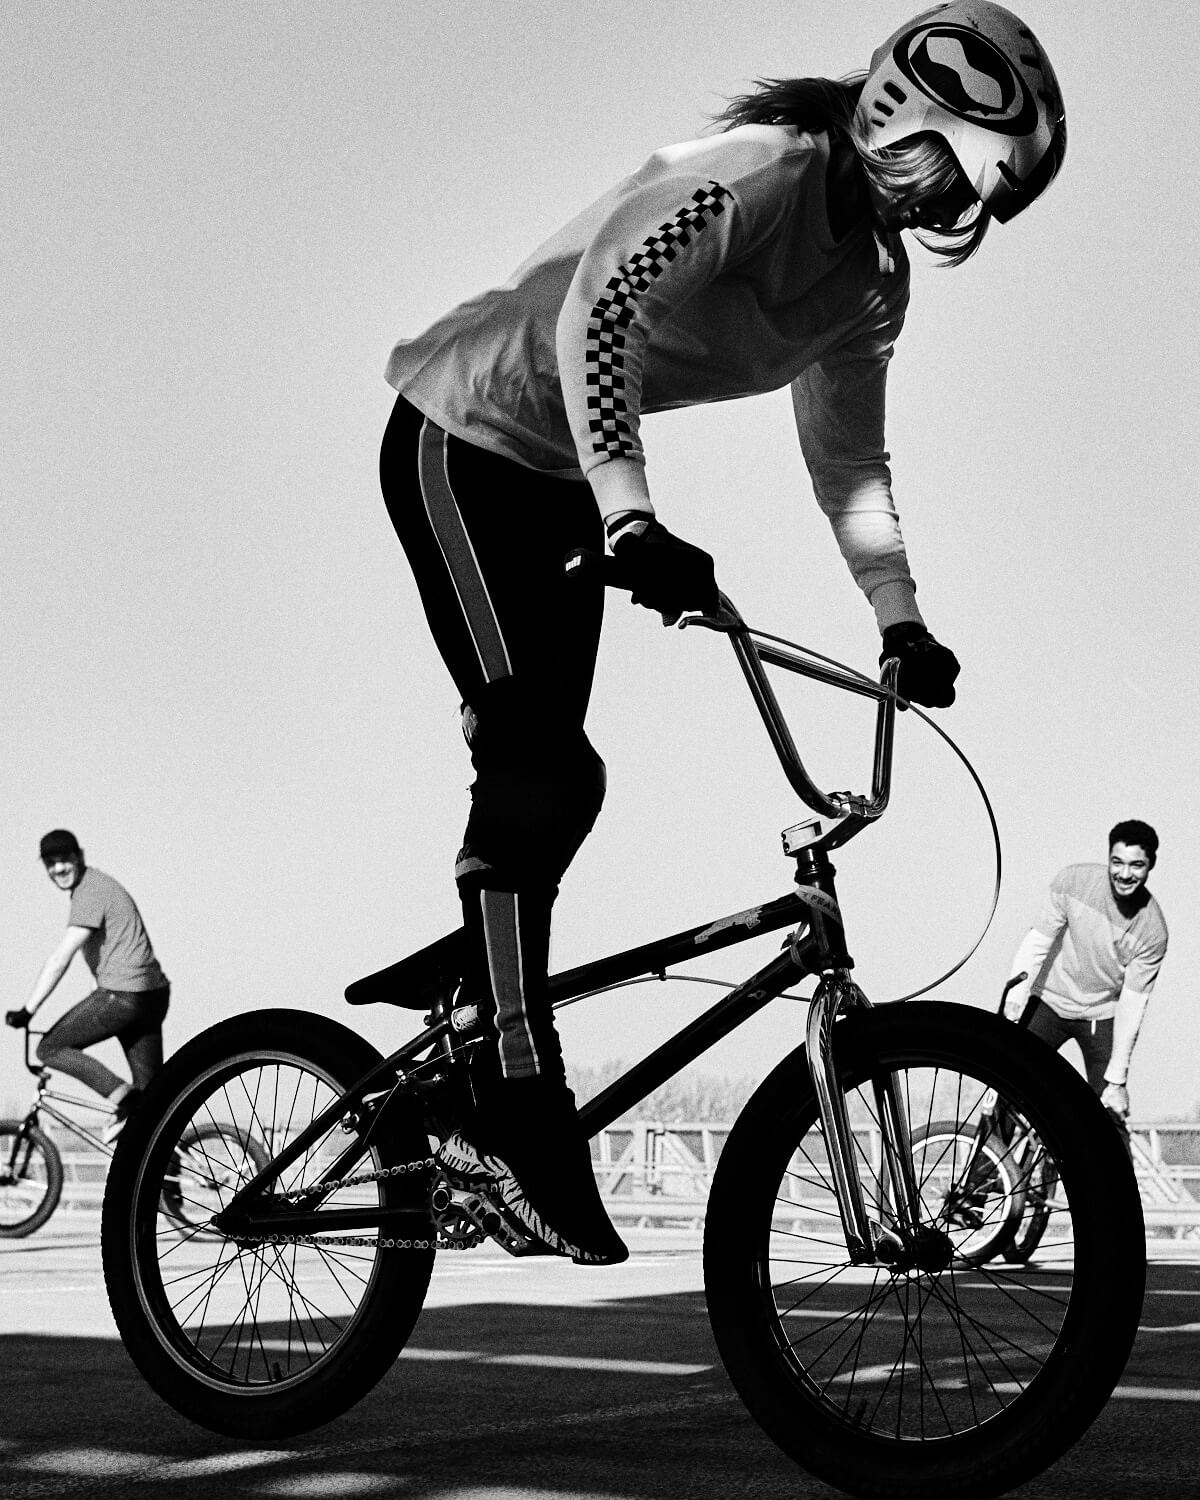 girl rides stunt bike by lifestyle photographer Tim Cole